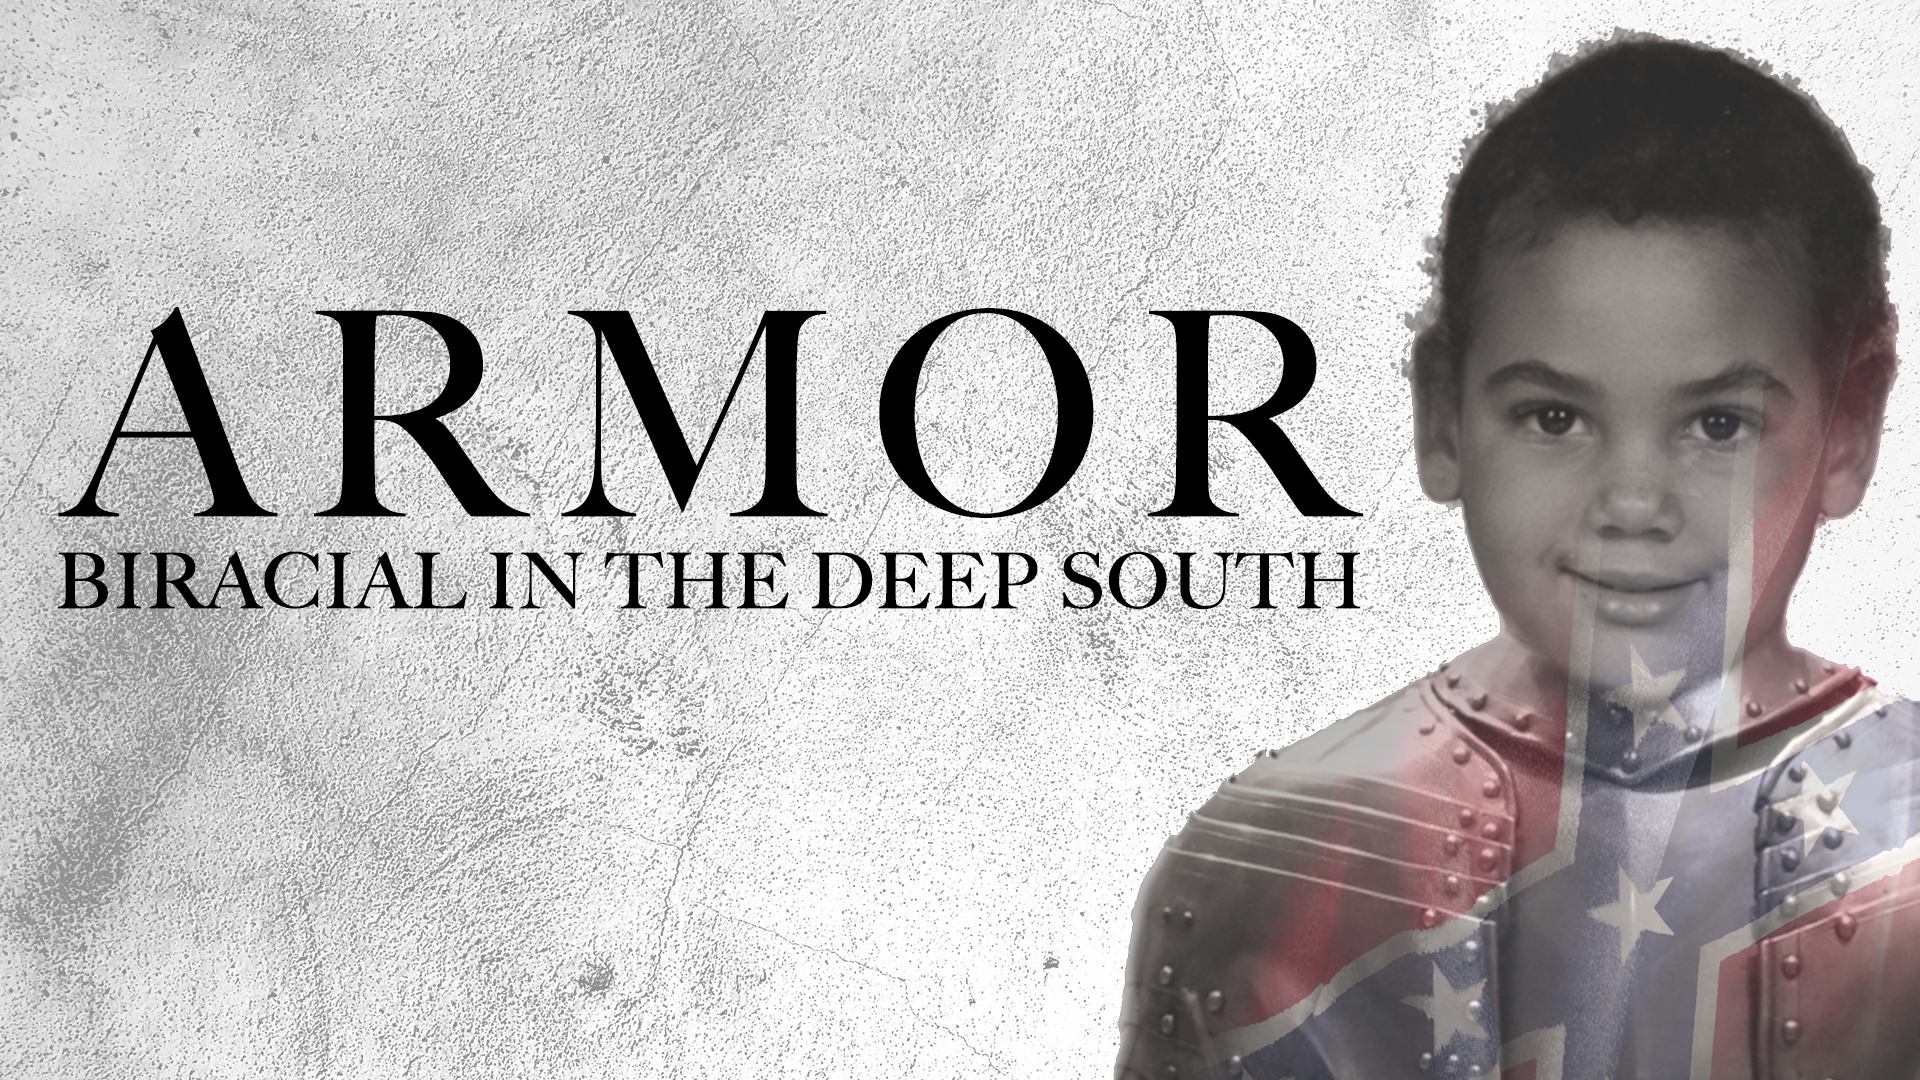 Armor: Biracial in the Deep South